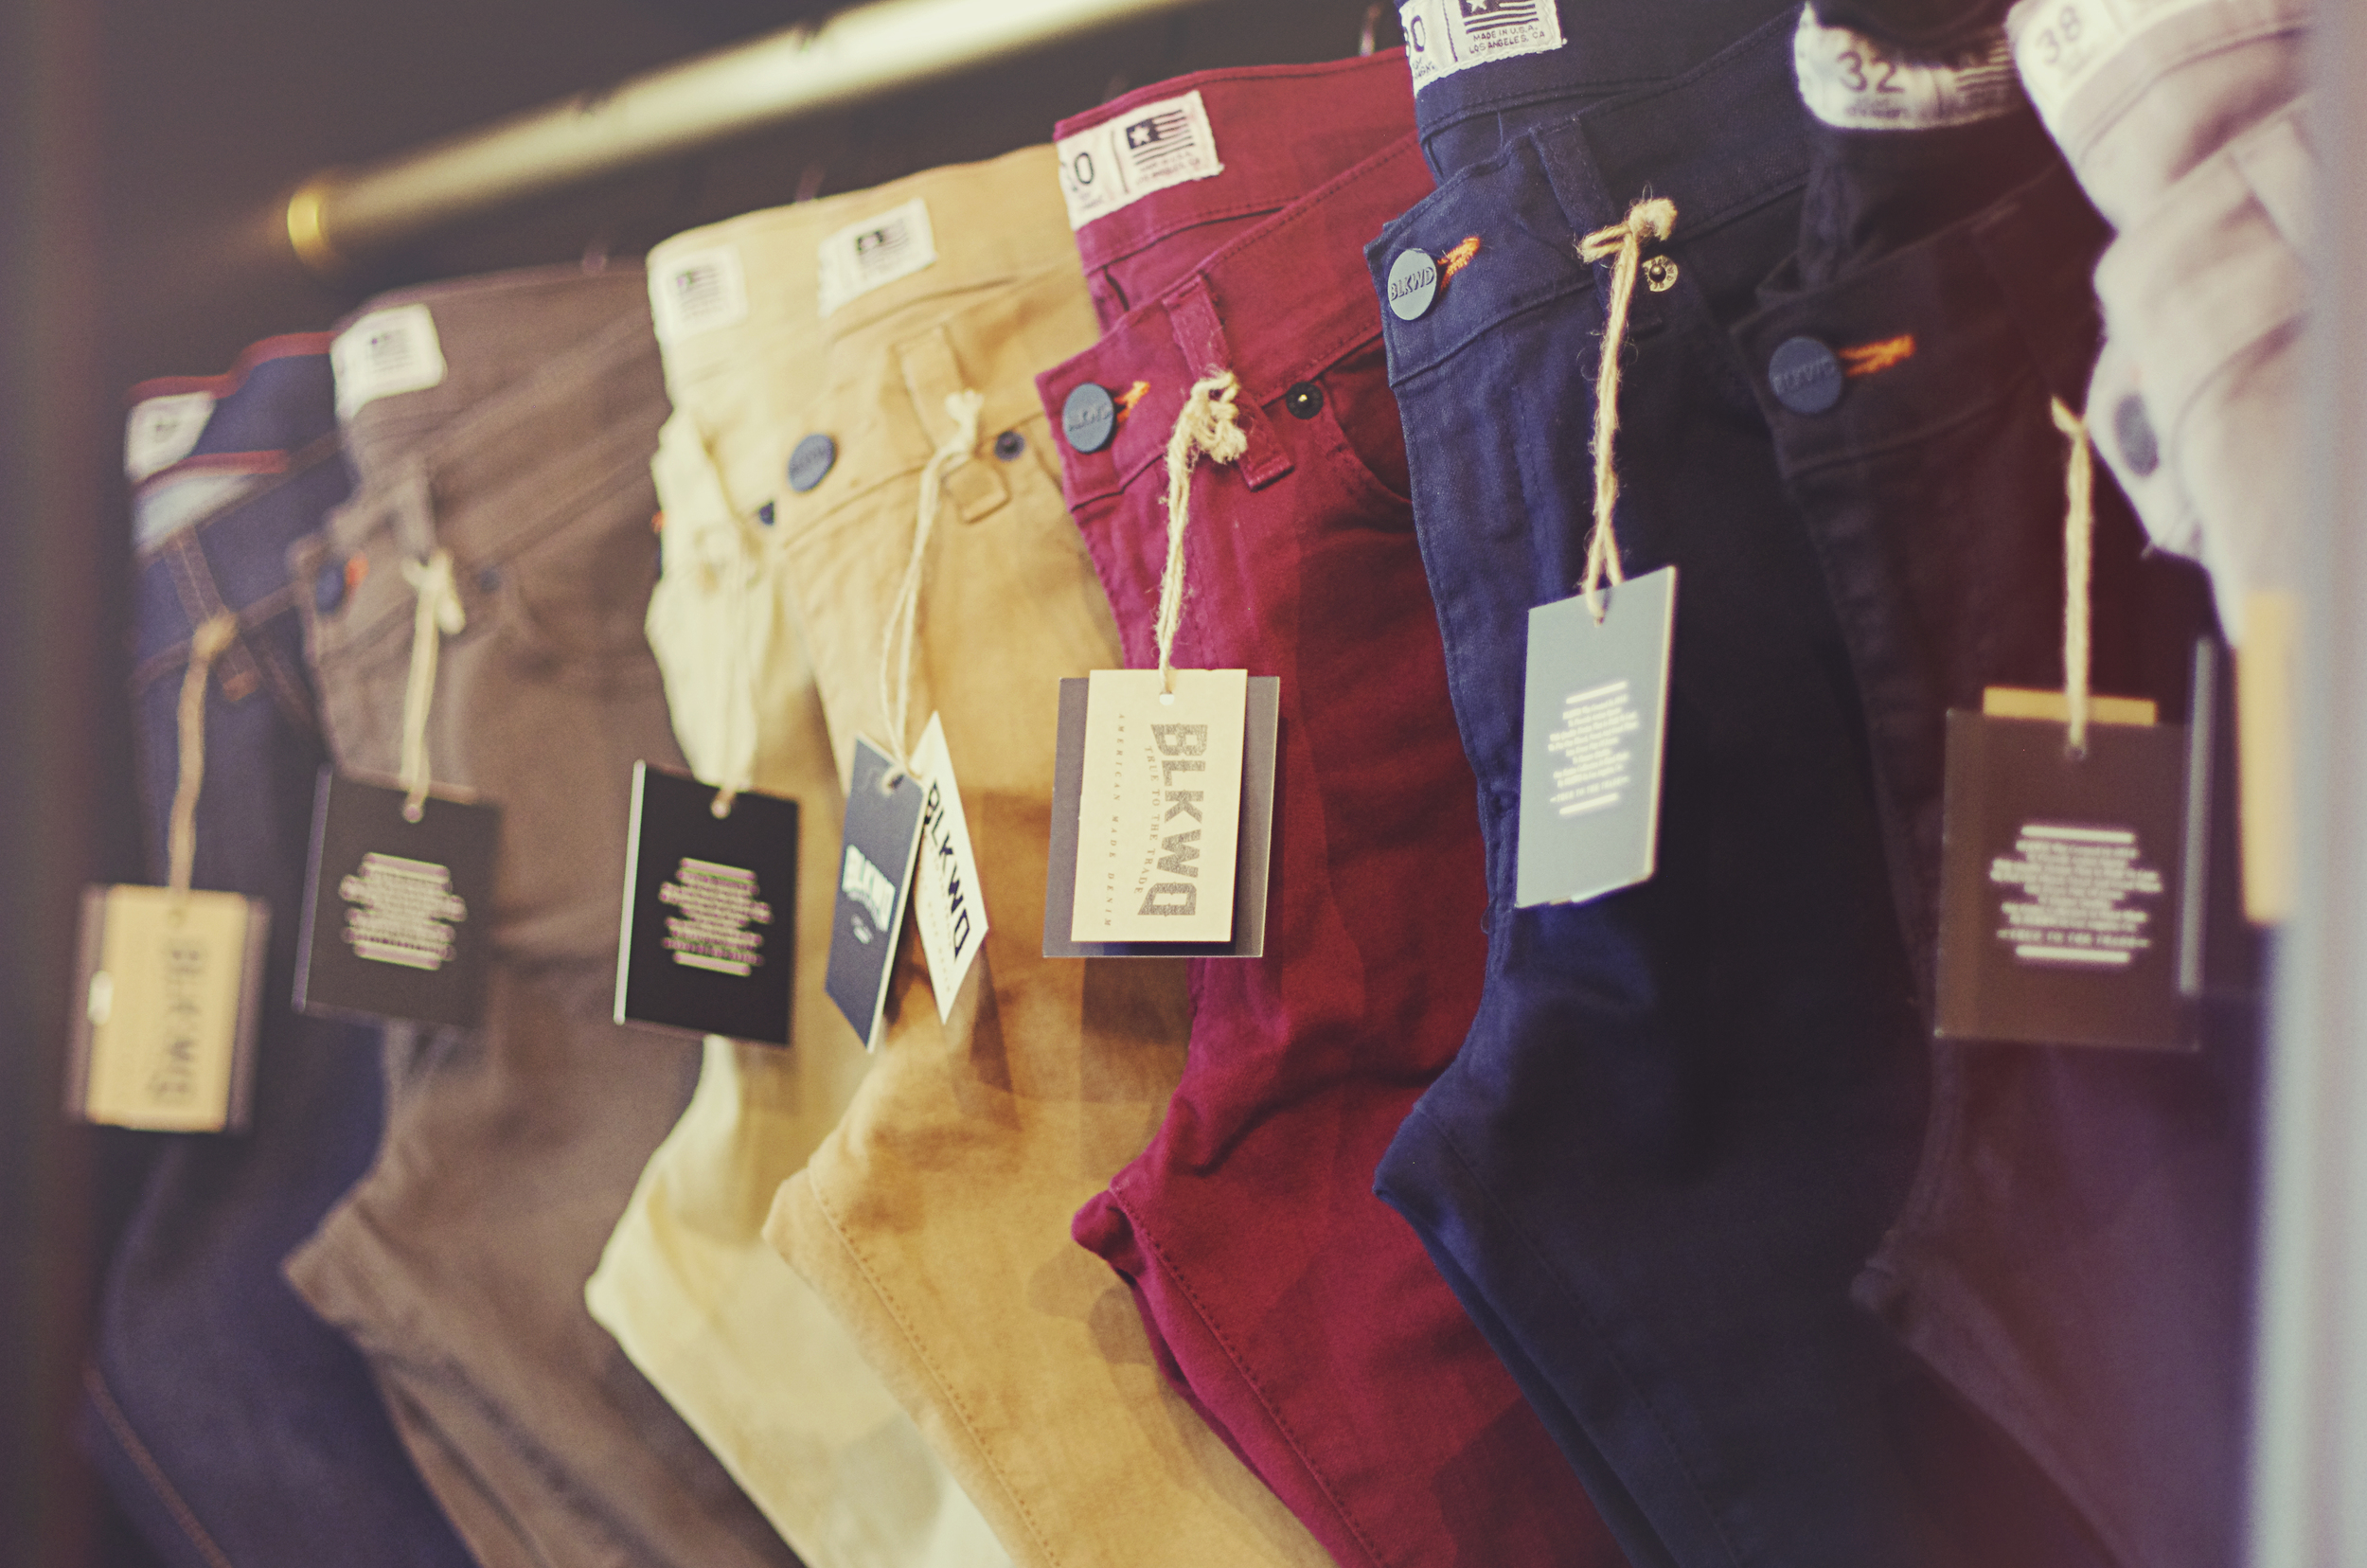 We have your new favorite jeans in stock!